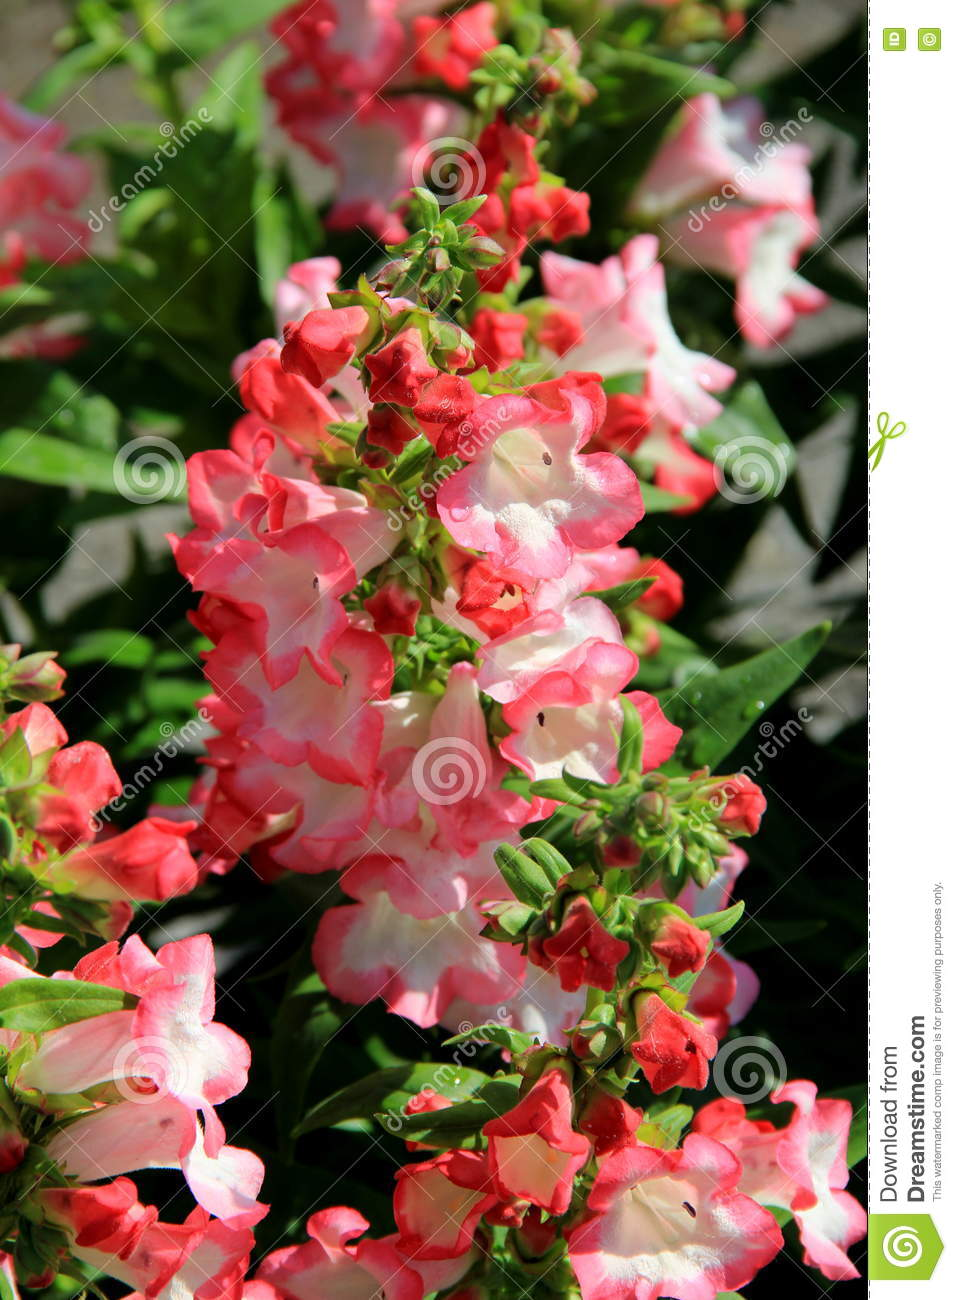 Beautiful Pink And White Flowers In Landscaped Garden Stock Photo